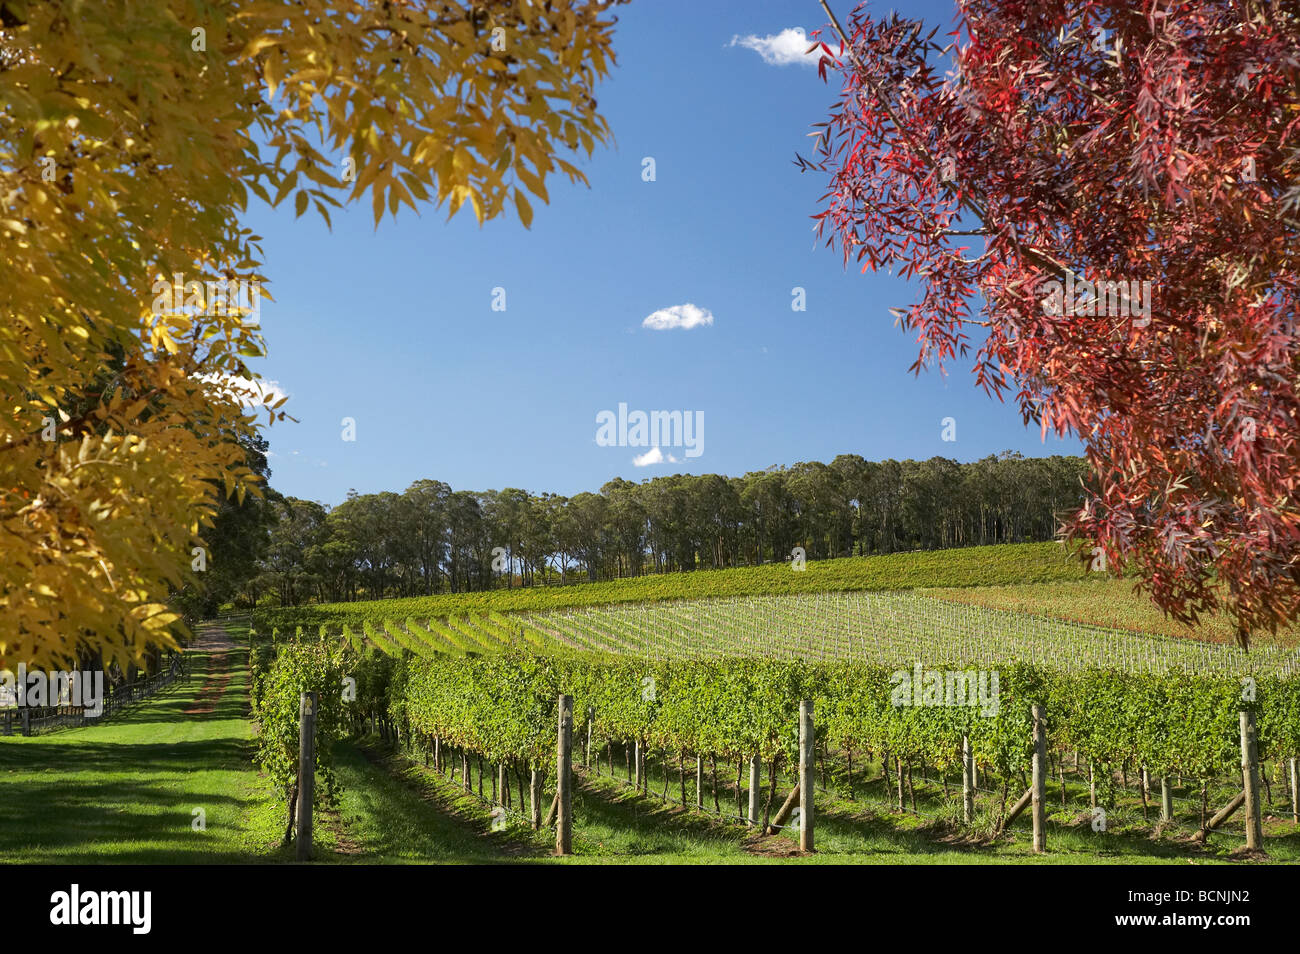 Autumn Colour Centennial Vineyards Bowral Southern Highlands New South Wales Australia - Stock Image